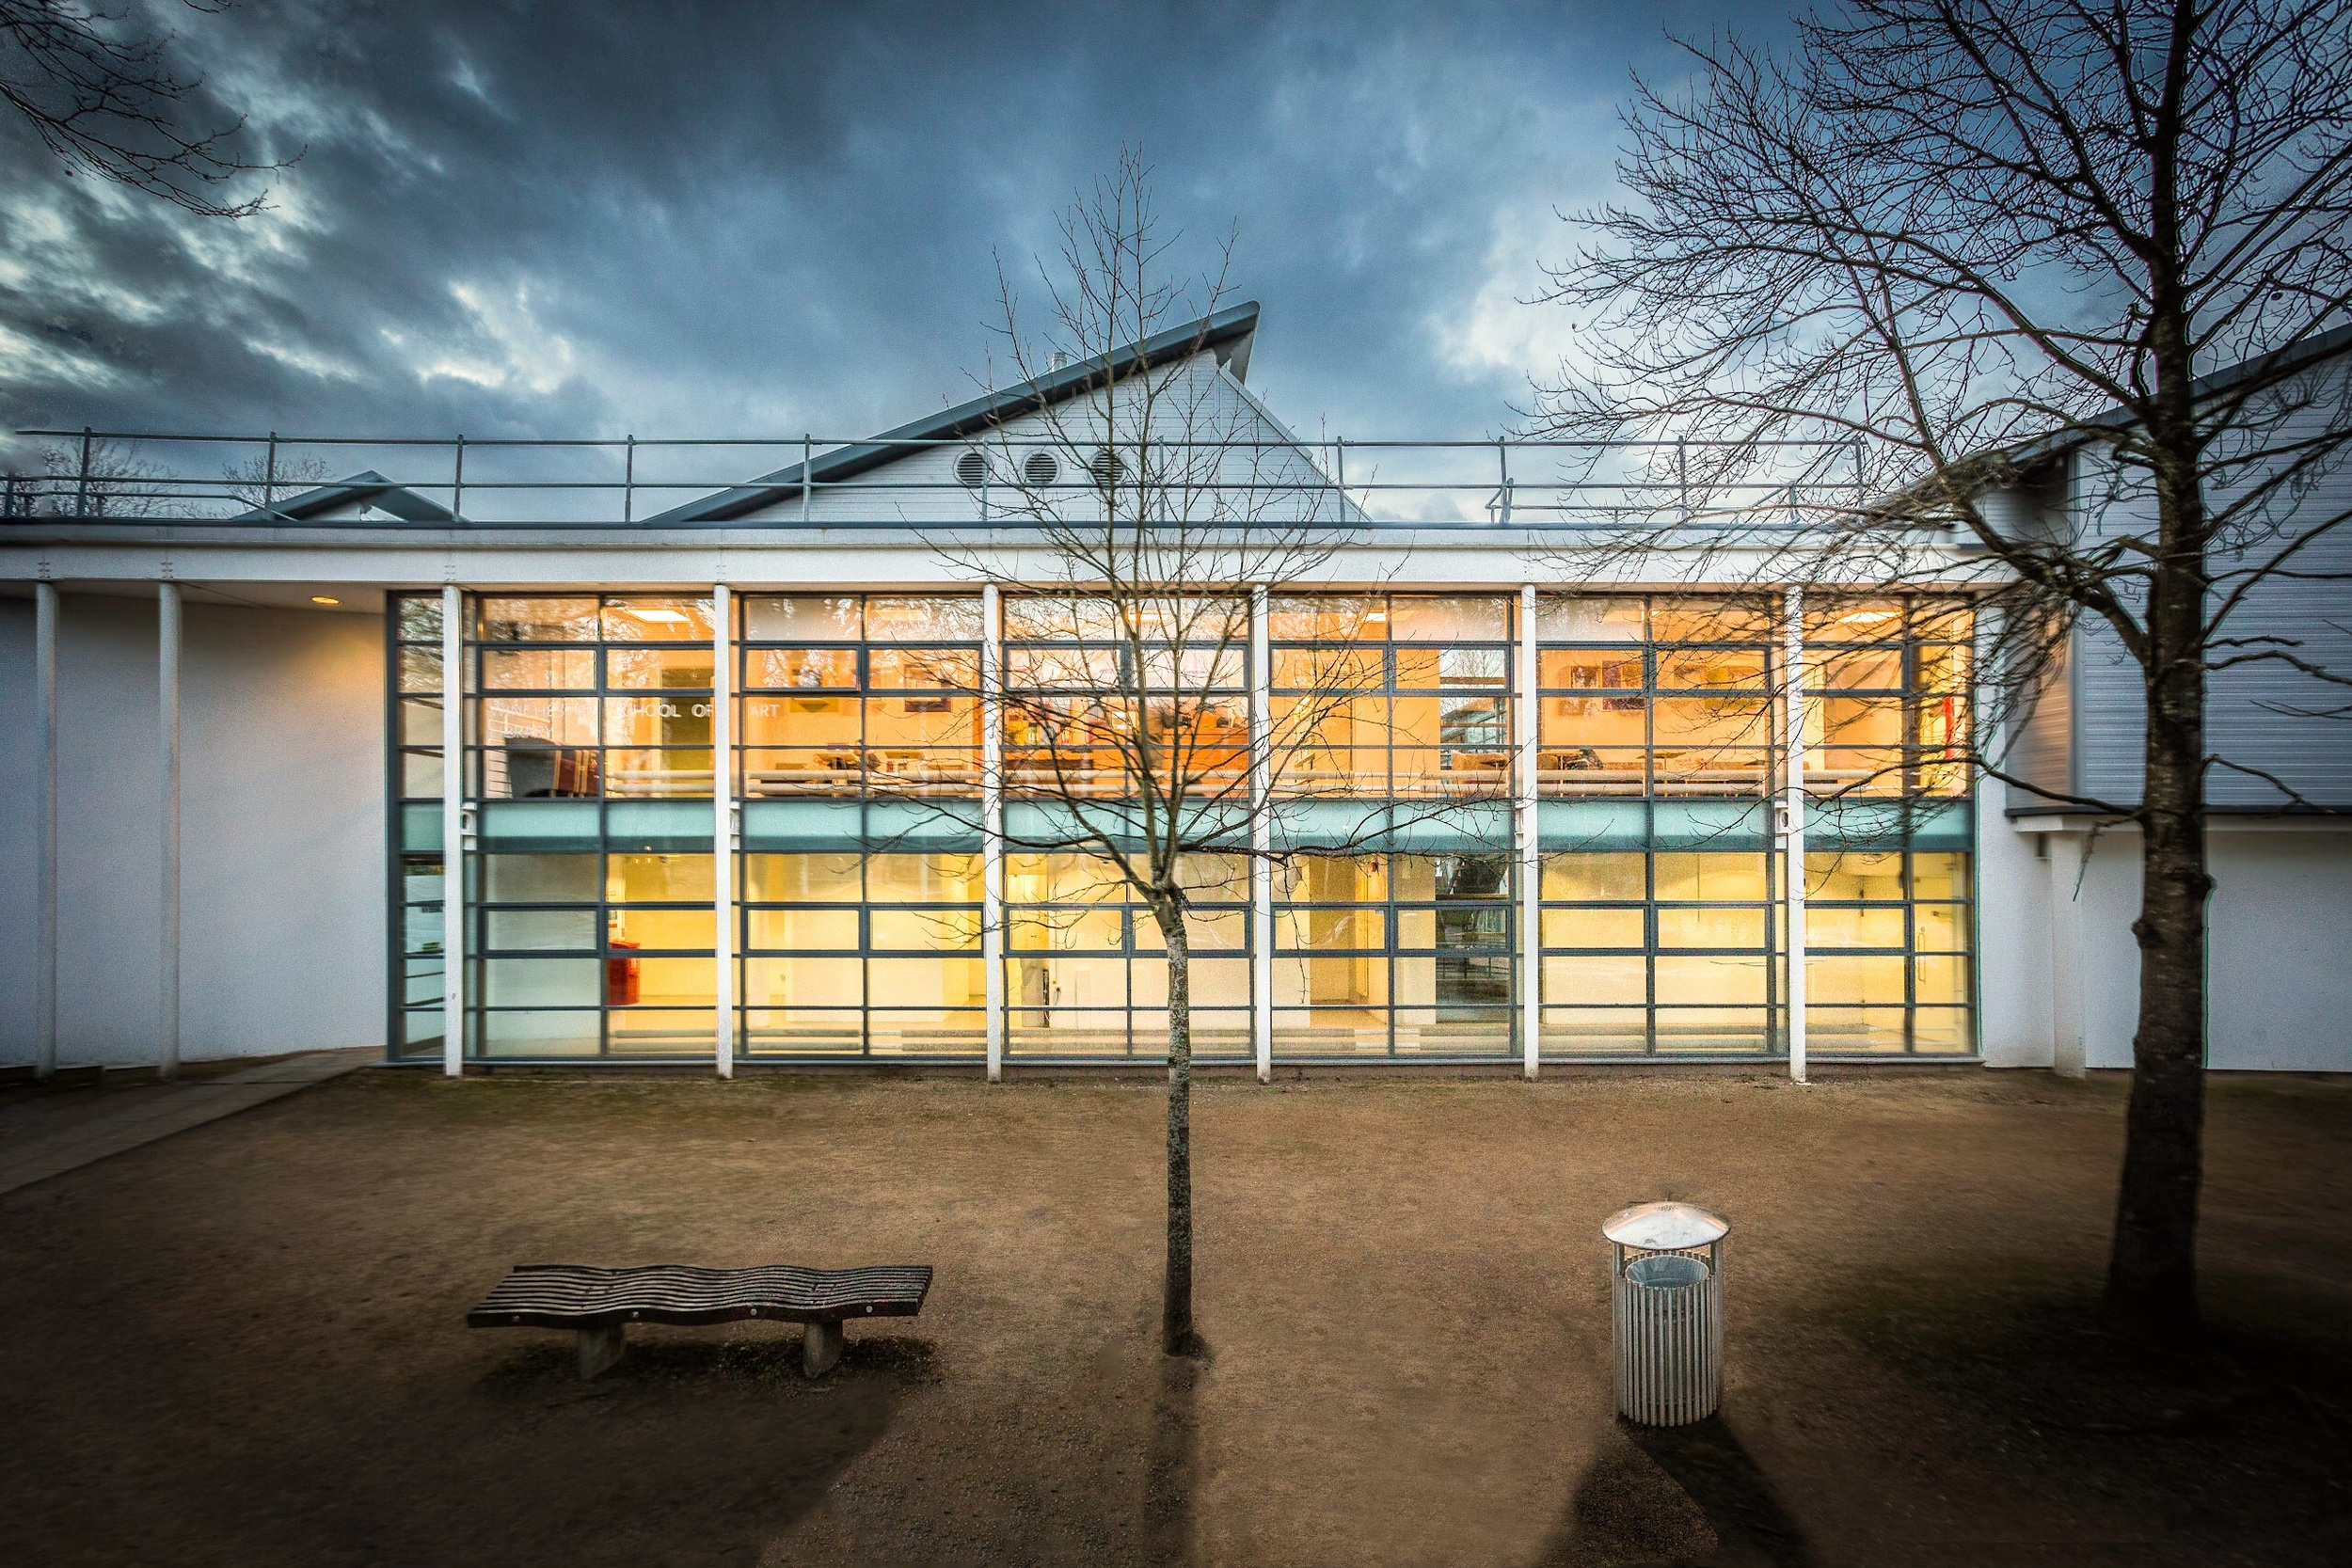 Winchester School of Art, Architectural Photogtaphy of the University of Southampton